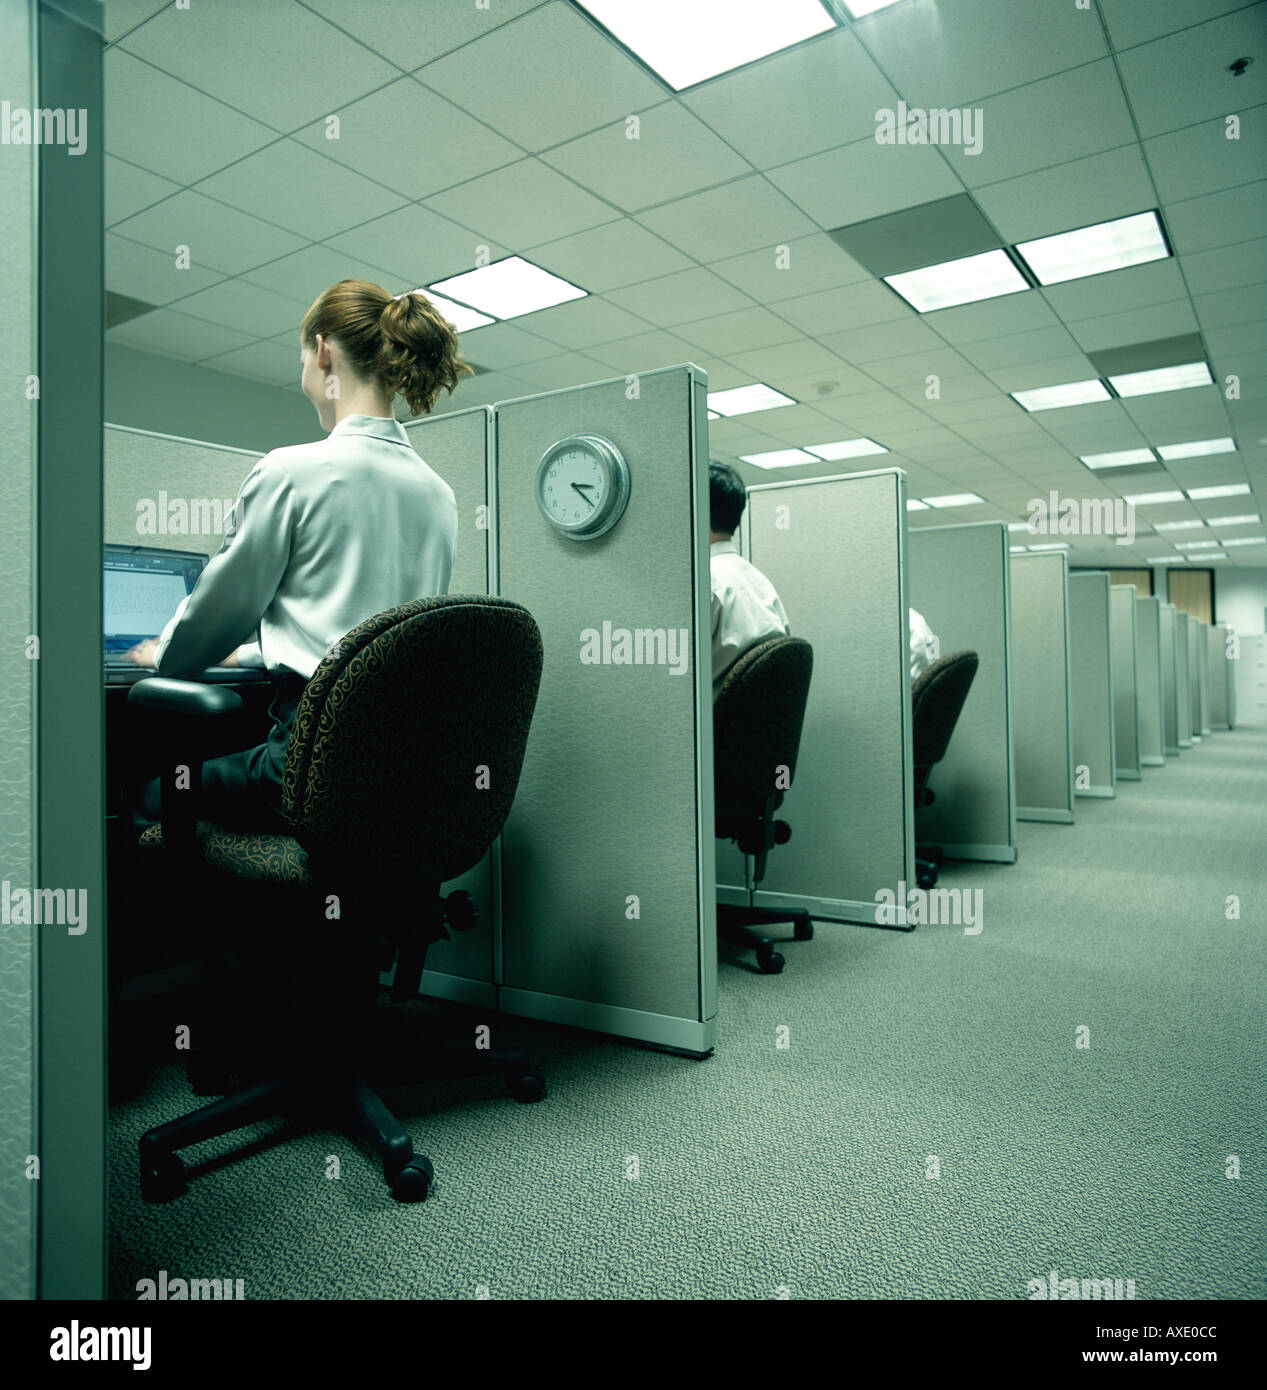 Robot like office workers slave away in small cubicles - Stock Image